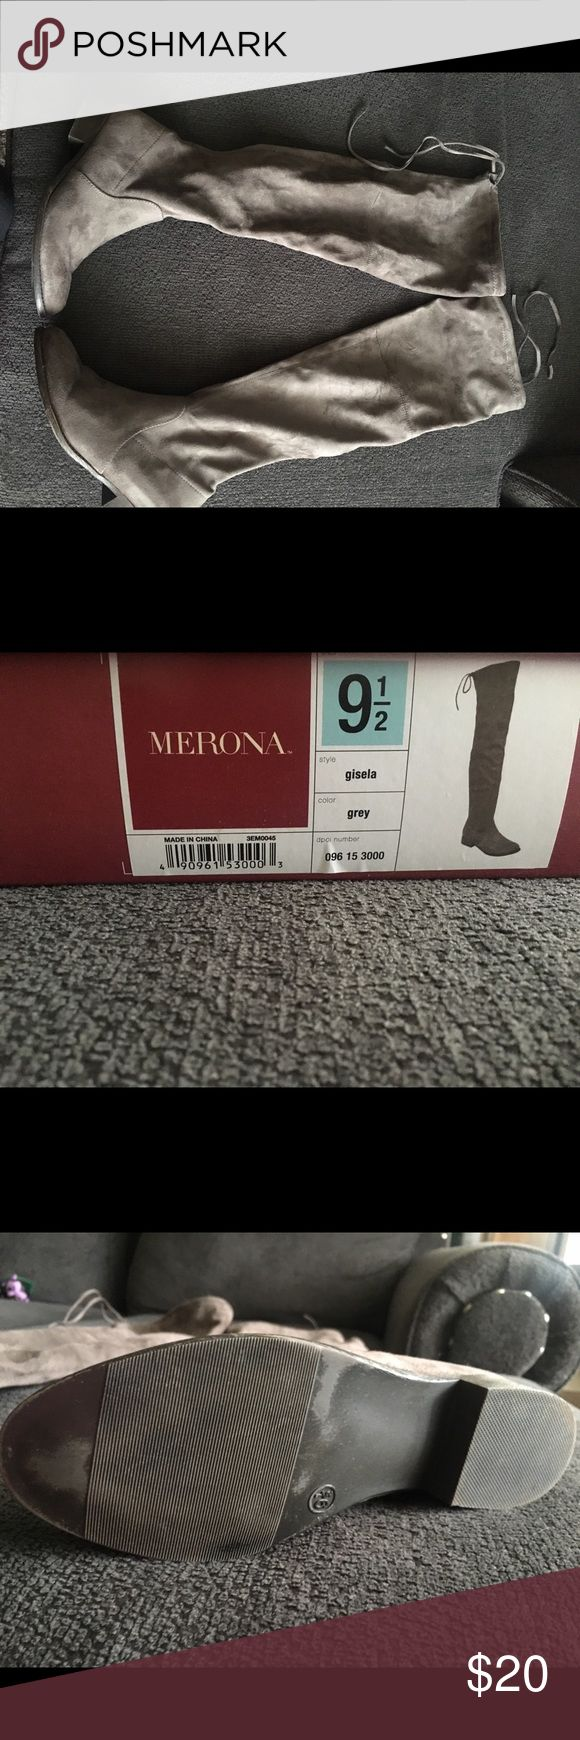 Boots Merona, from Target boots for sale. Only wore a few times. Very little wear on the soles. Excellent condition! Merona Shoes Over the Knee Boots